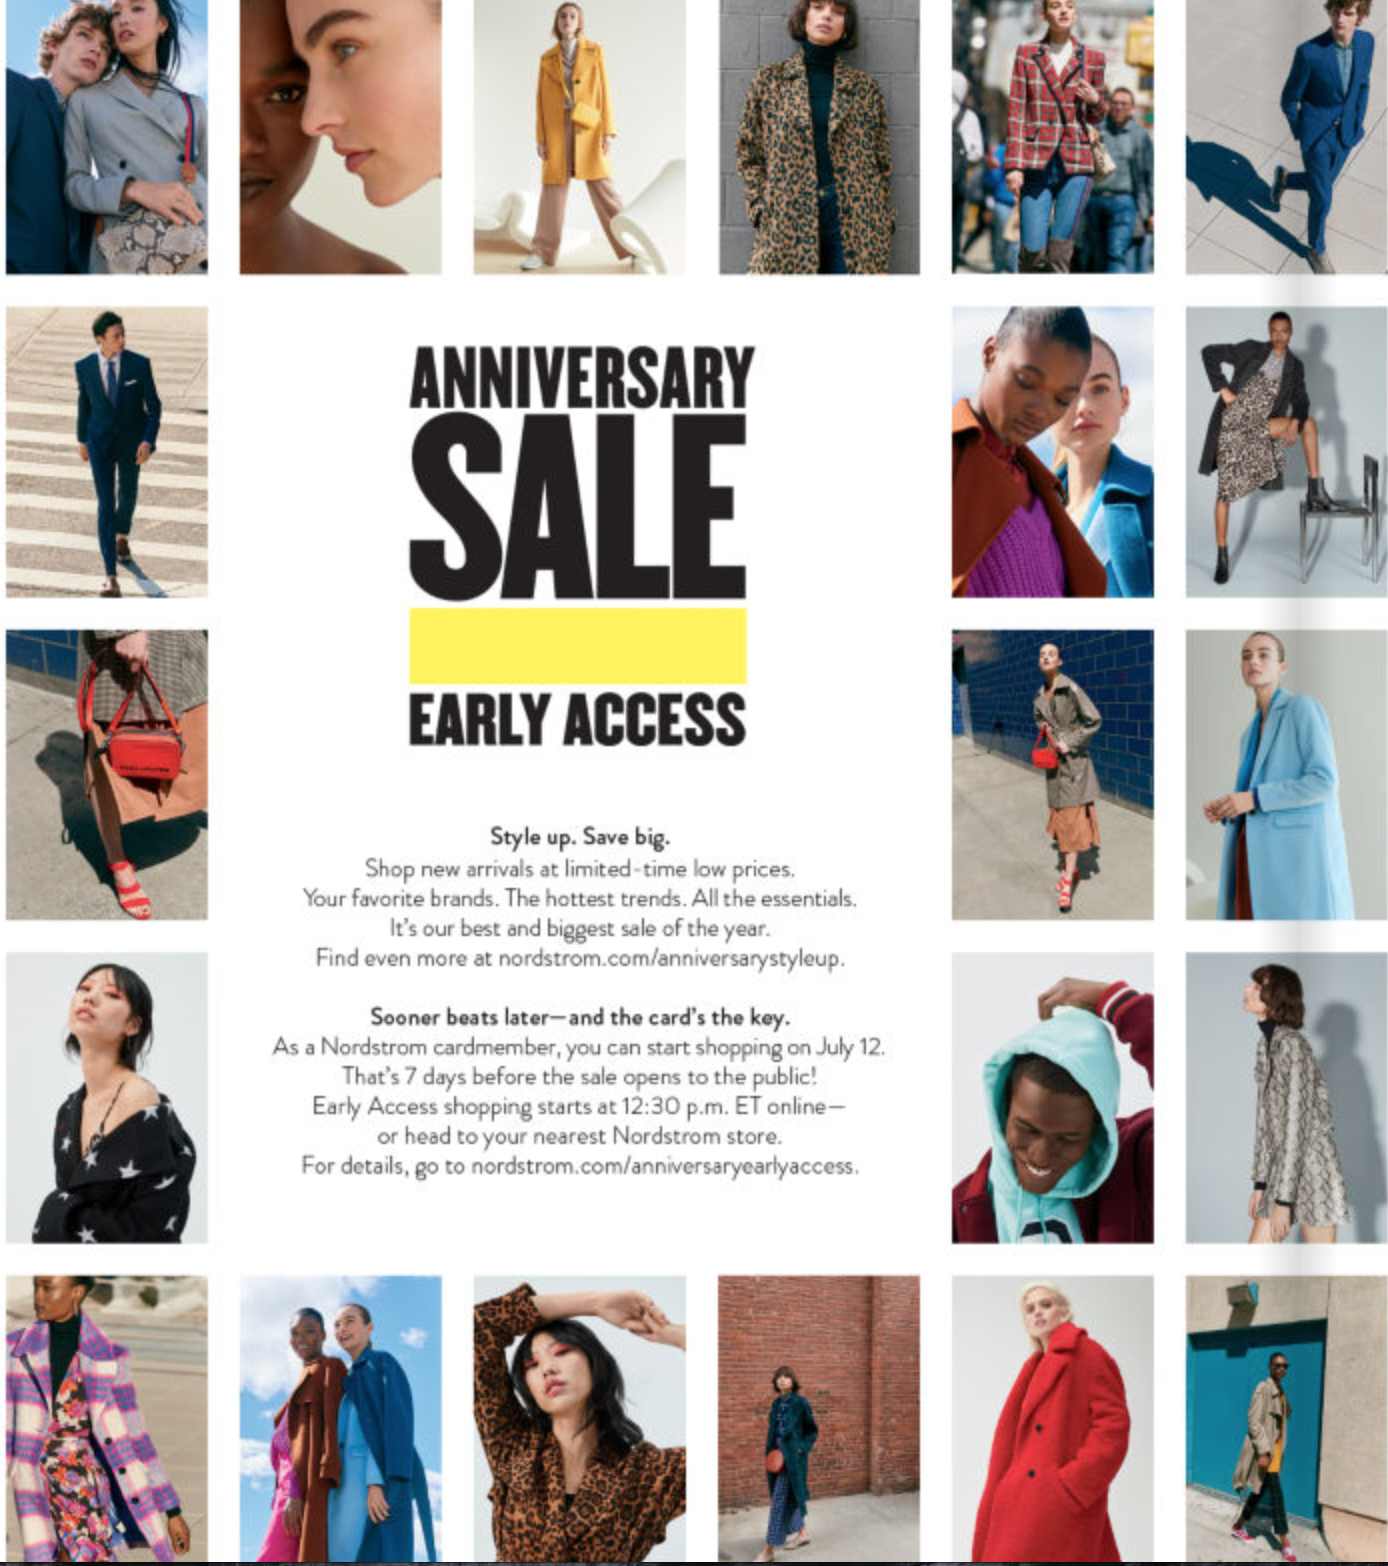 The Nordstrom Anniversary Sale -Everything you need to know